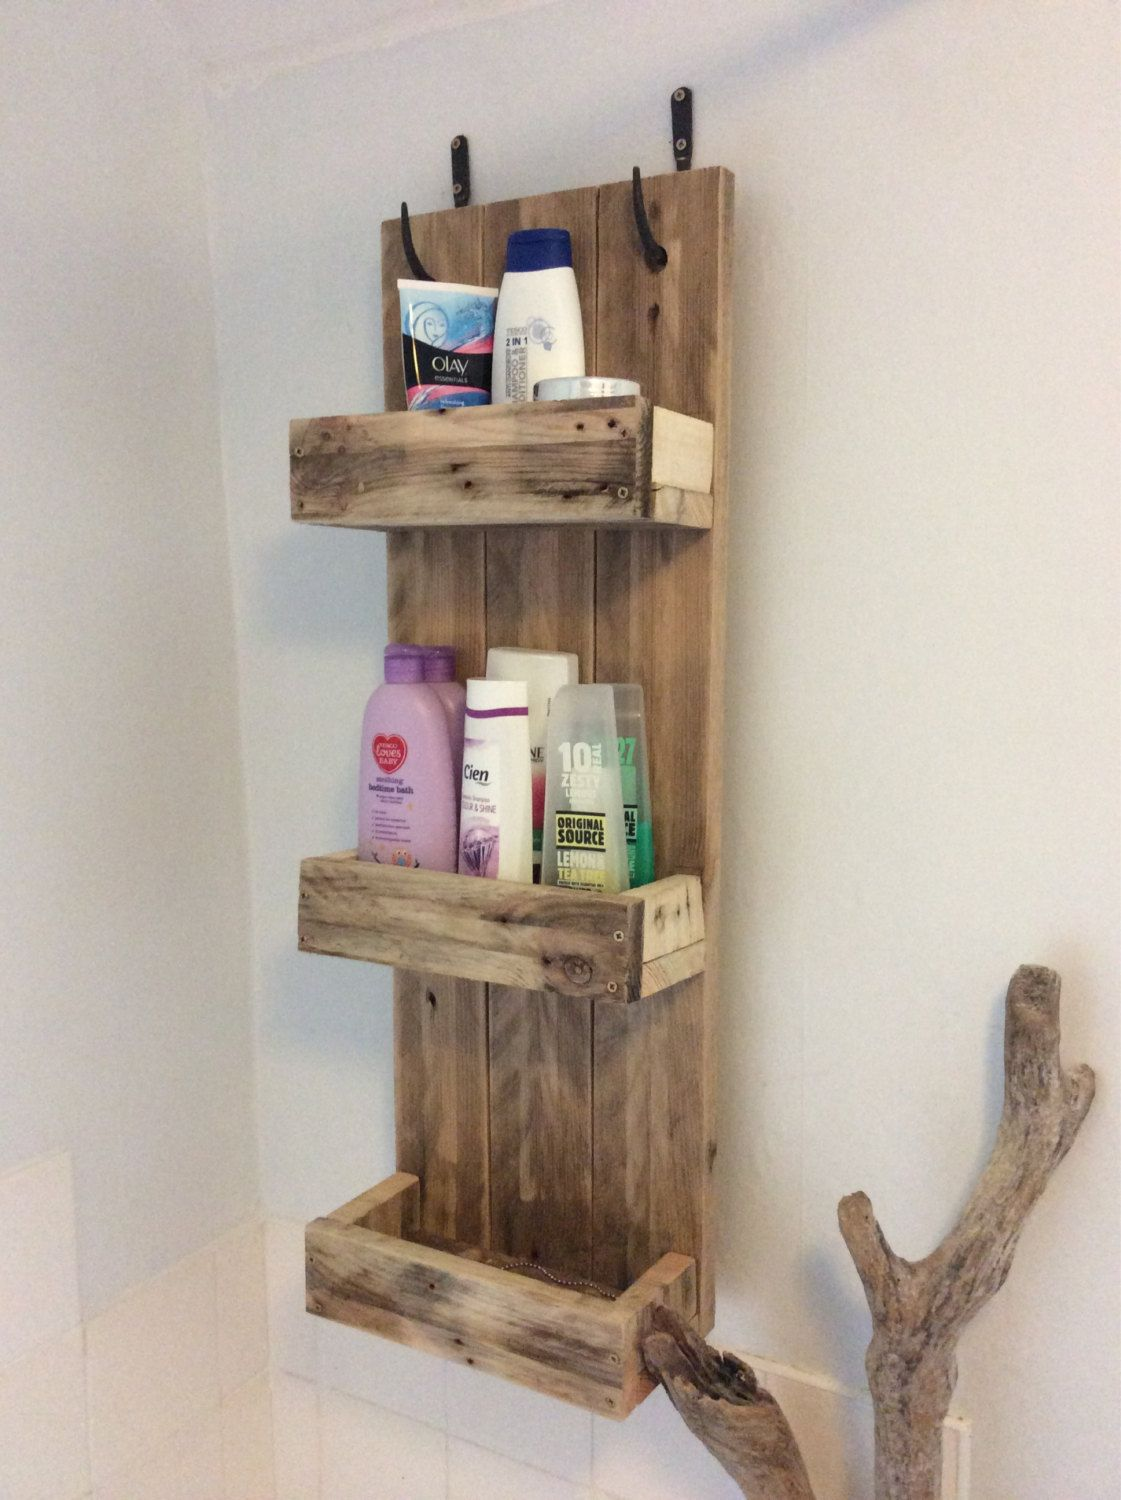 Fun Bathroom Shelves Made From Reclaimed Pallet Wood By Palletgenesis On Rustic Bathroom Shelves Made From Reclaimed Pallet Wood Pallet Wooden Bathroom Ladder Shelf Wooden Bathroom Shelf Argos